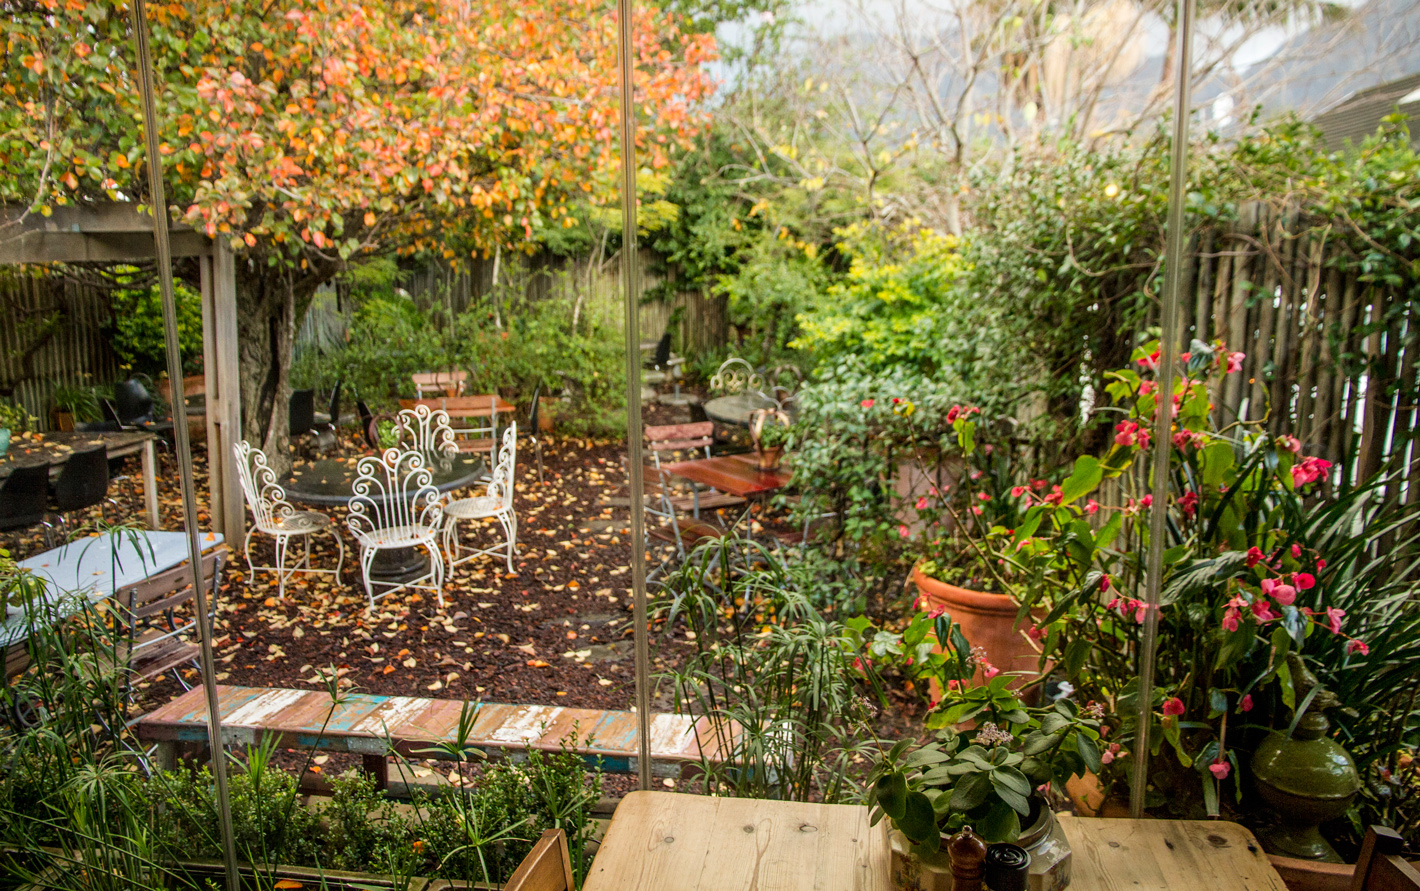 Starlings courtyard perfect for outdoor breakfast